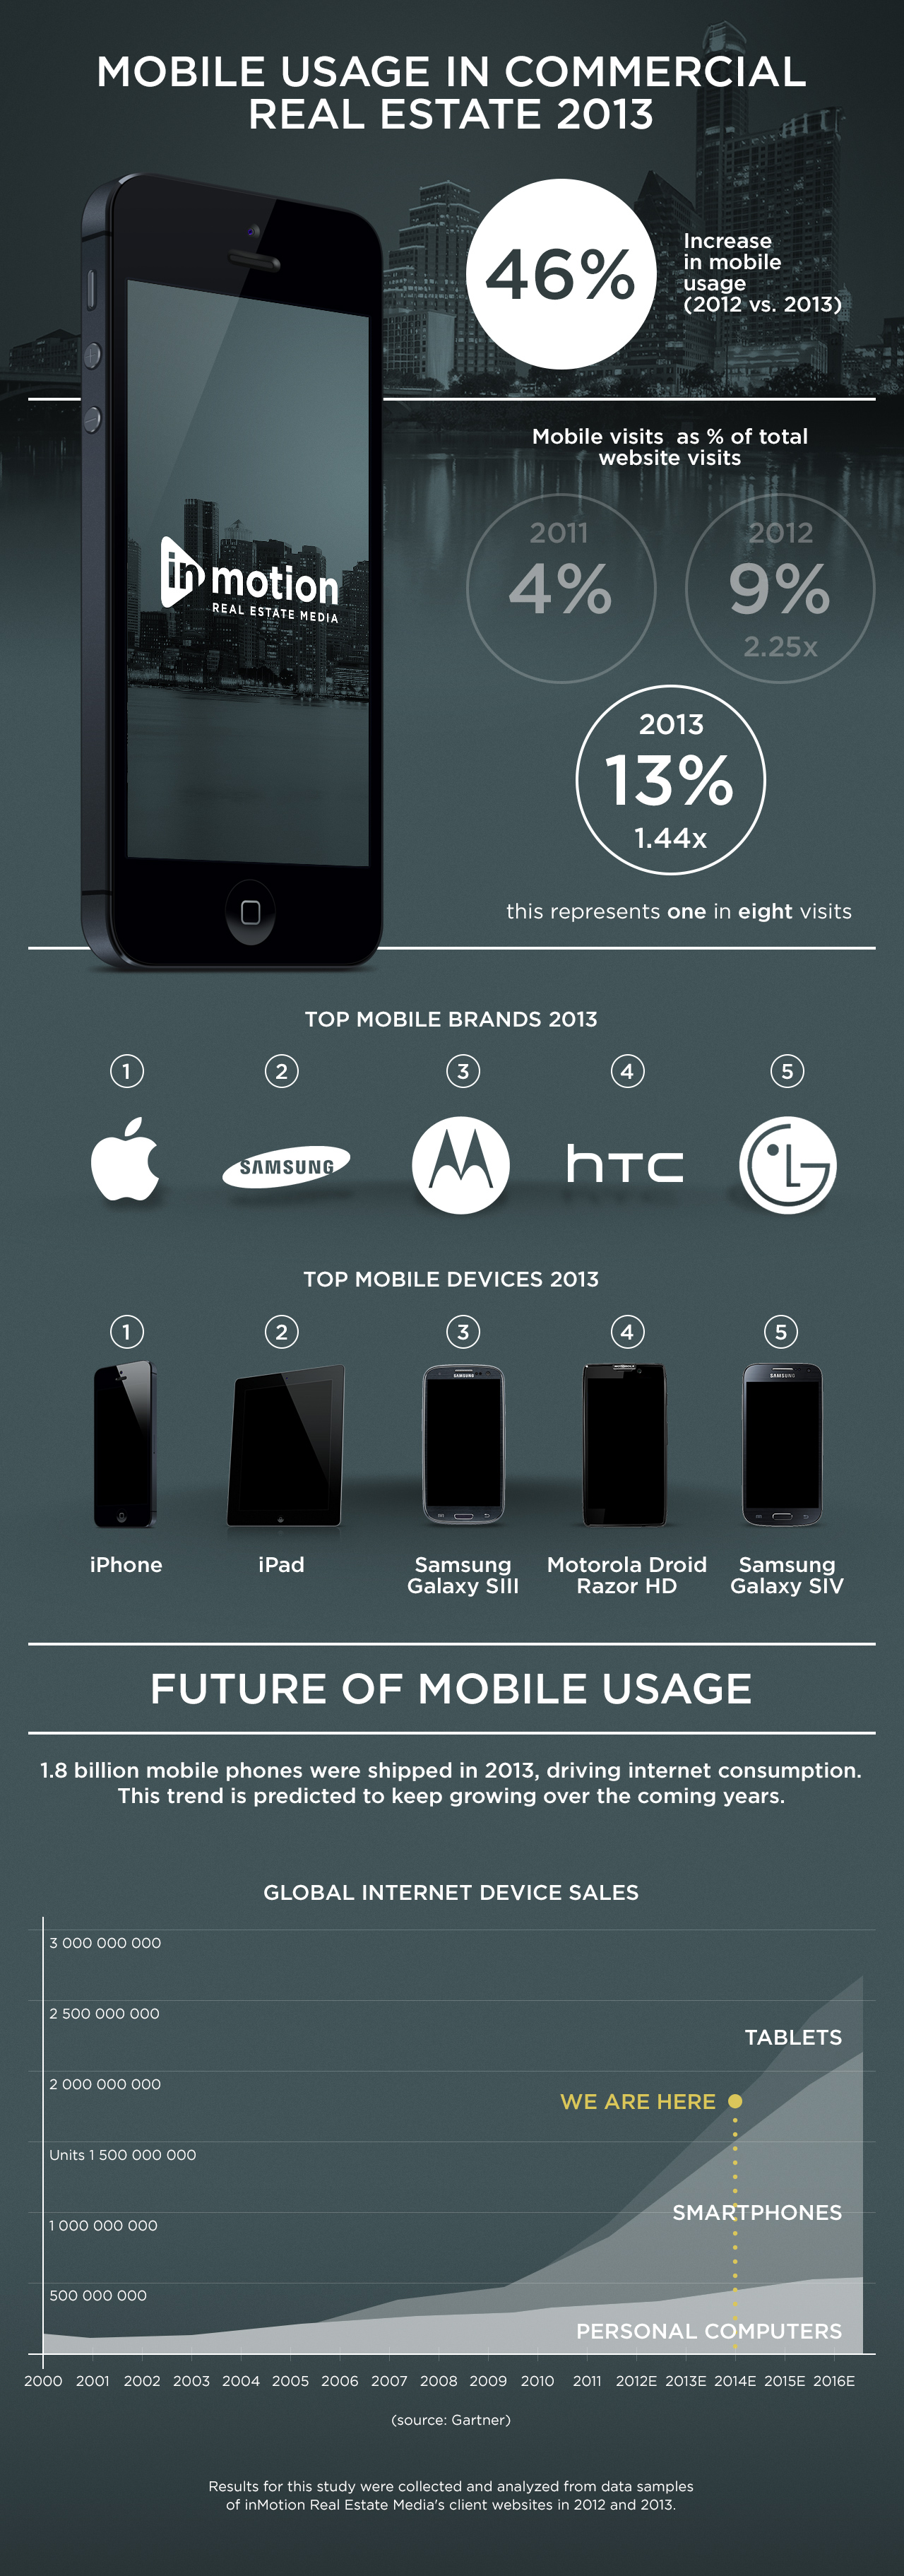 mobile use in commercial real estate